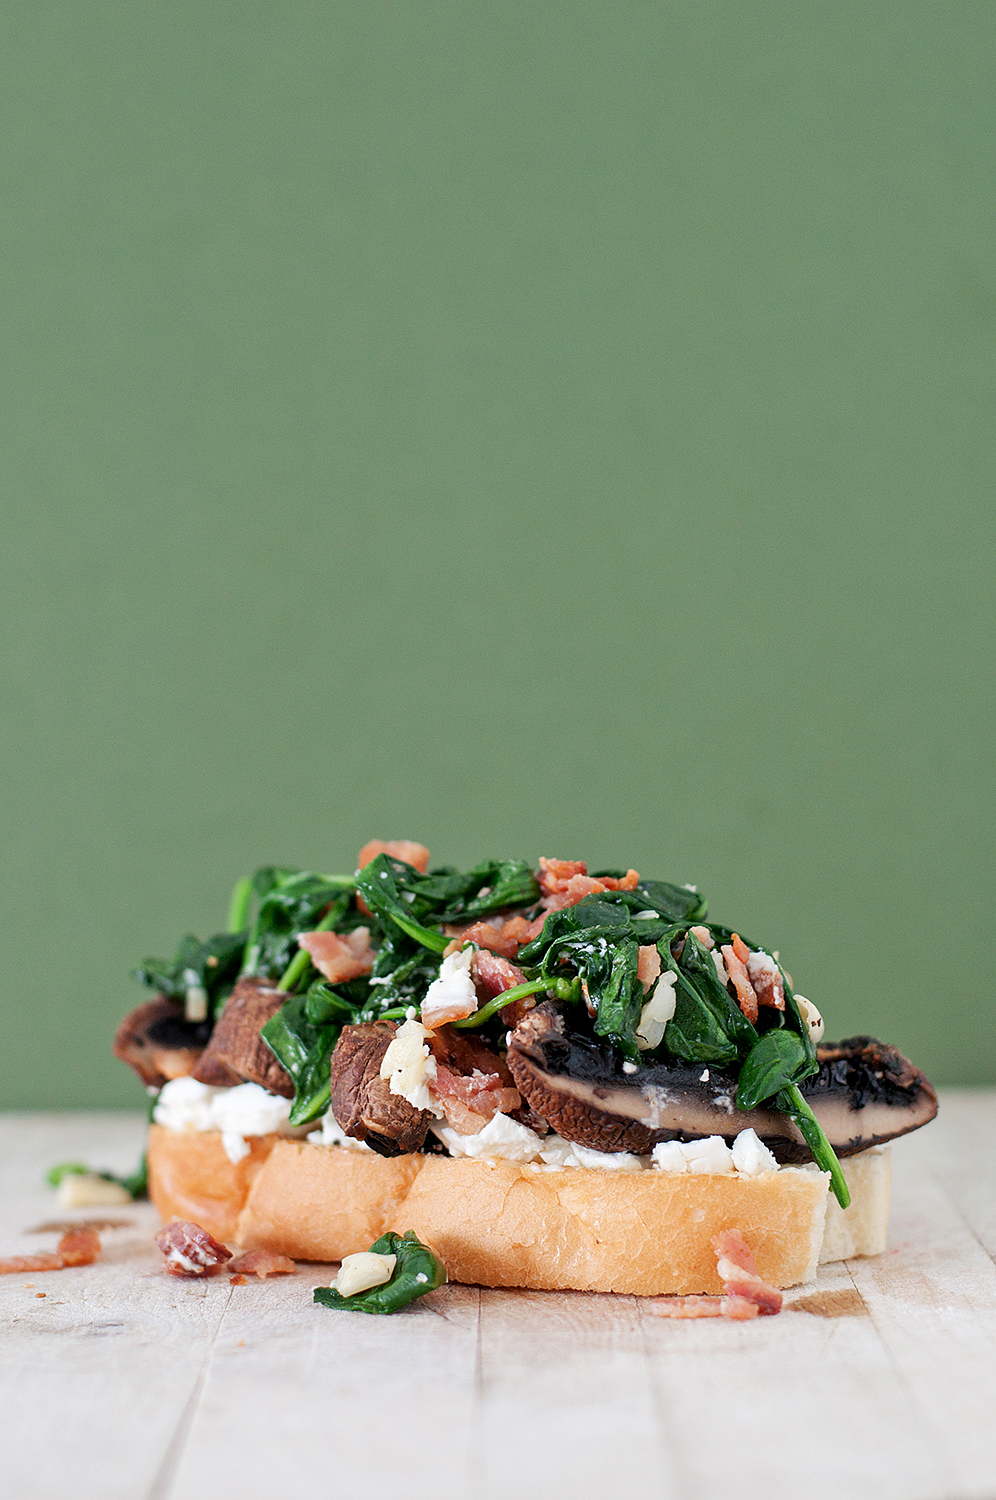 Portobello Mushroom And Goat Cheese Sandwiches Recipes — Dishmaps